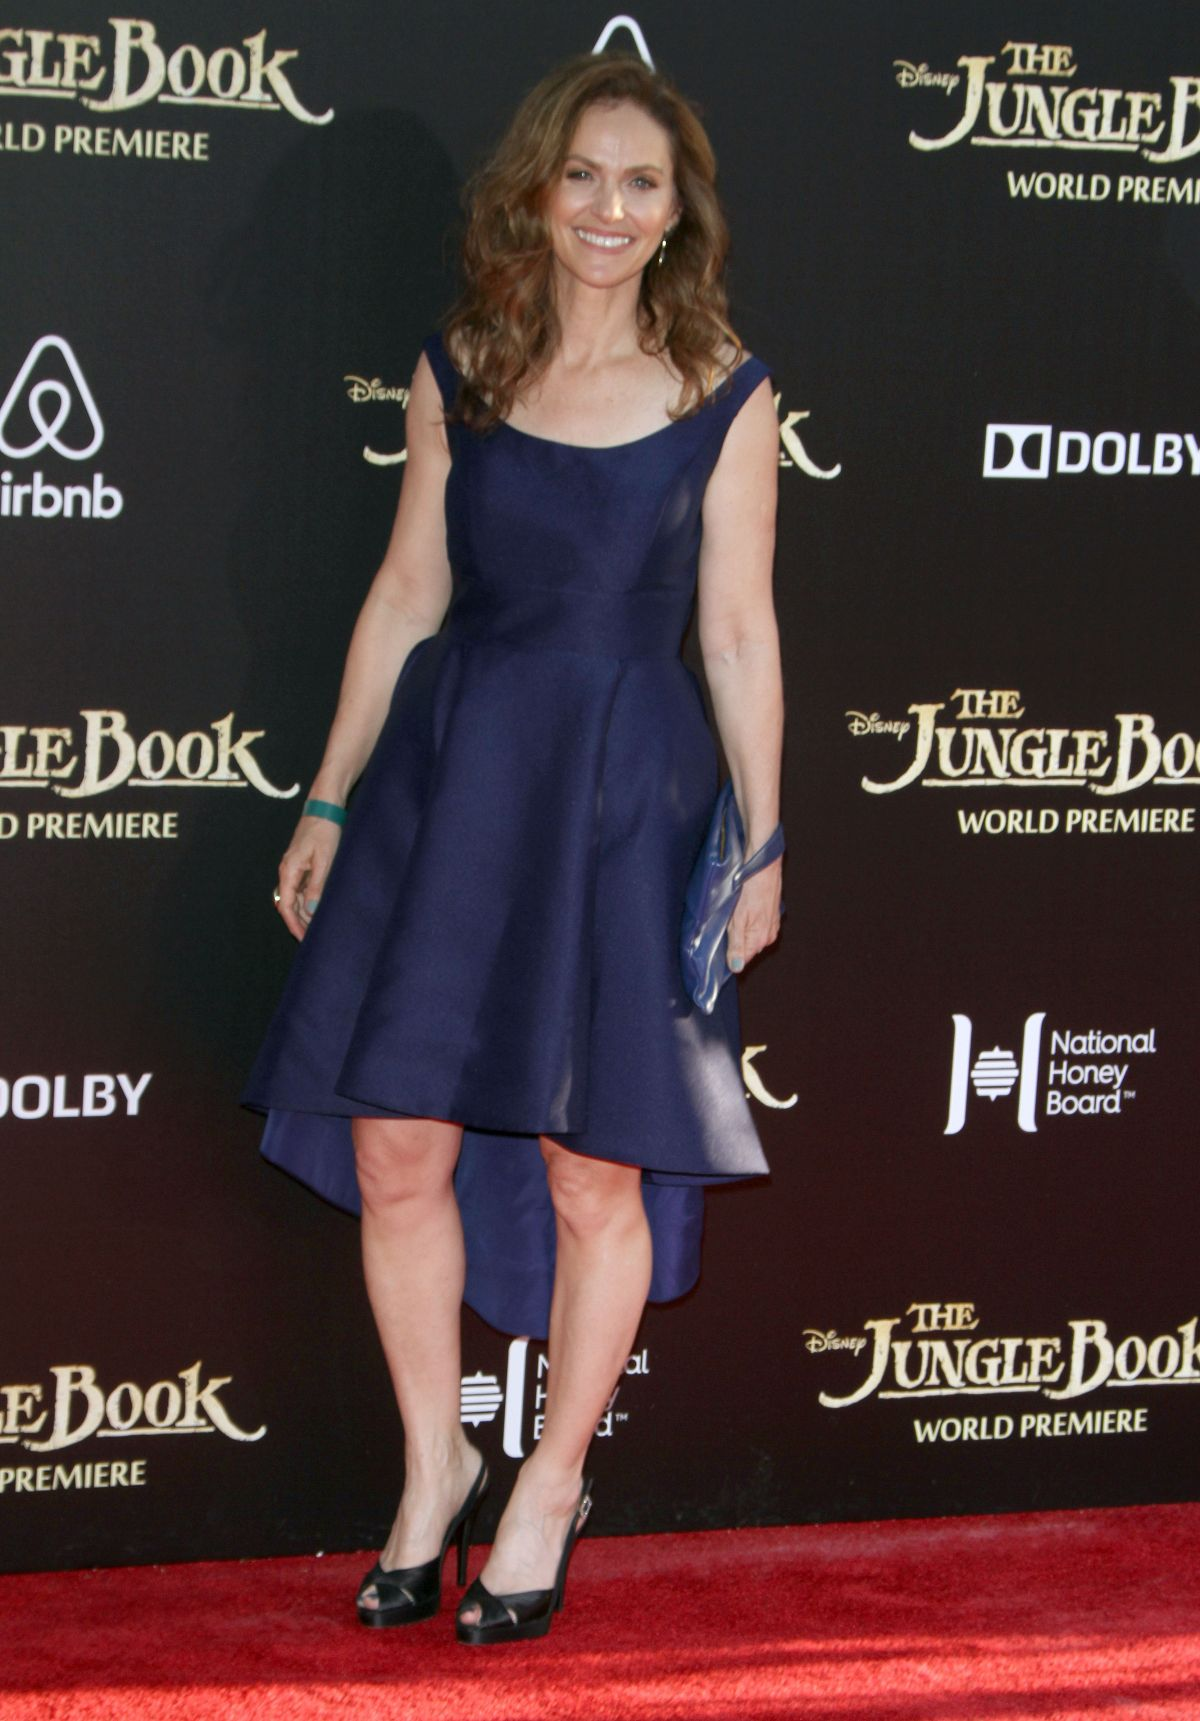 AMY BRENNEMAN at 'The Jungle Book' Premiere in Hollywood 04/04/2016